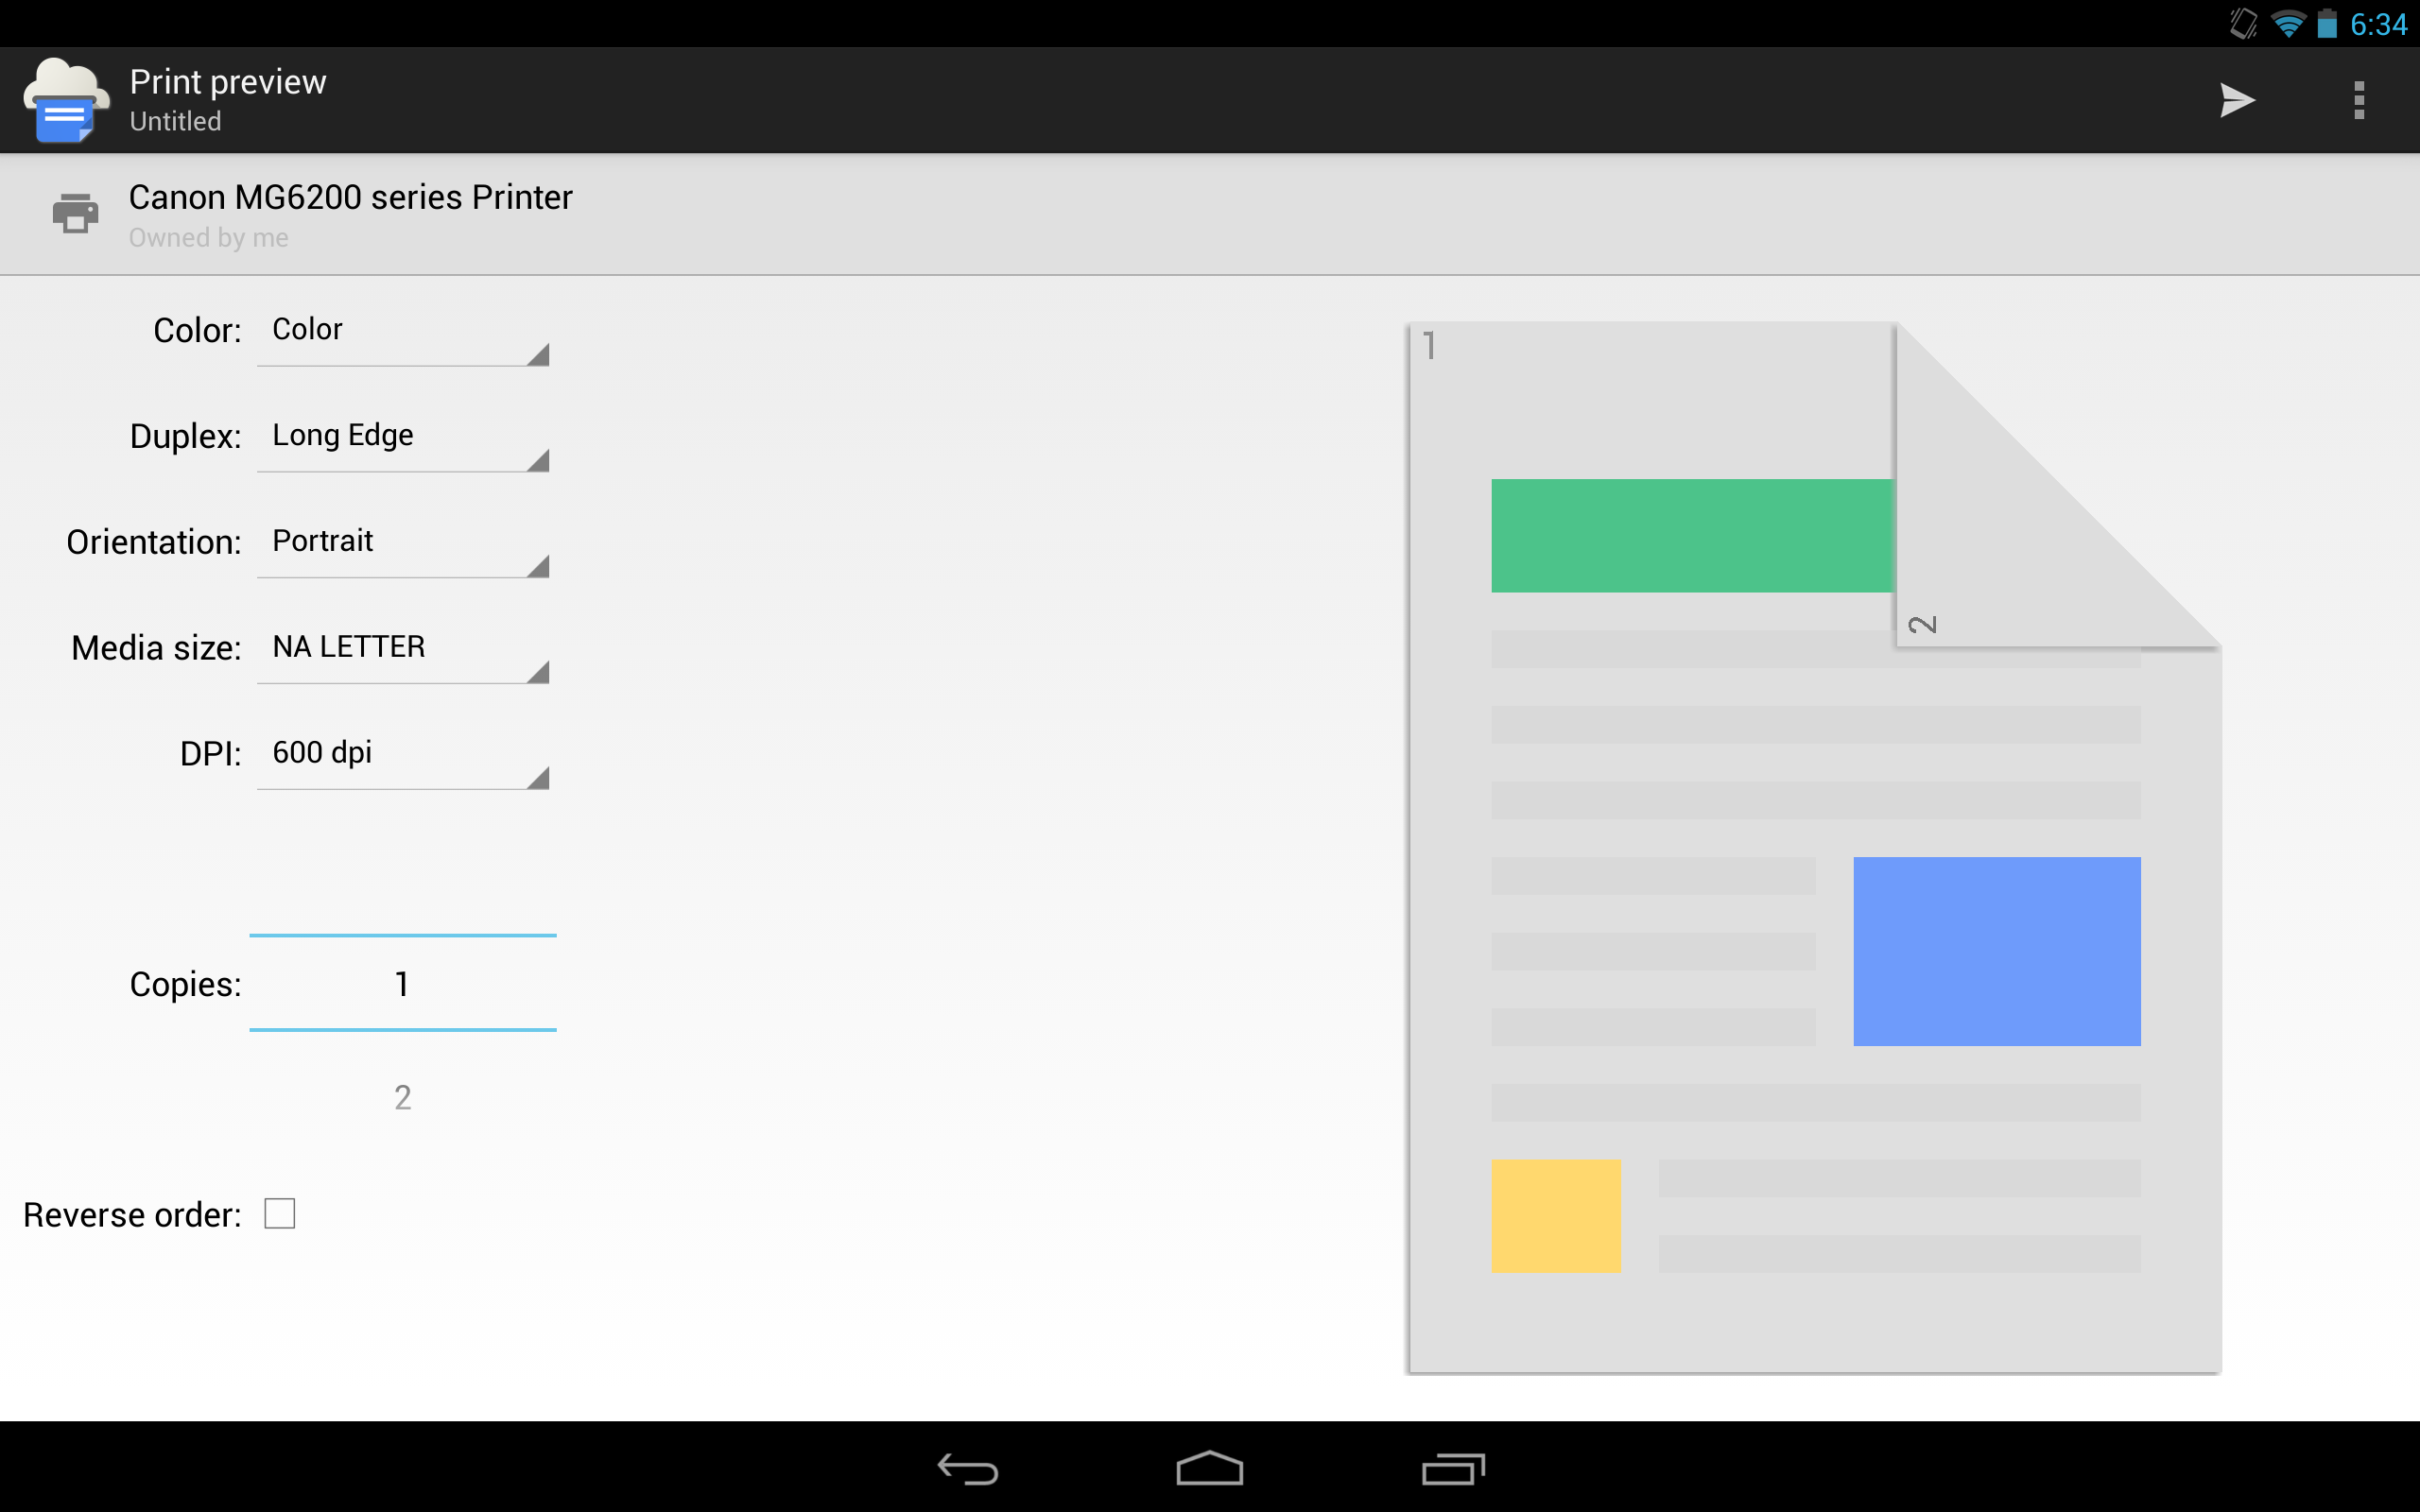 New App] Google Releases Official Cloud Print App [Update